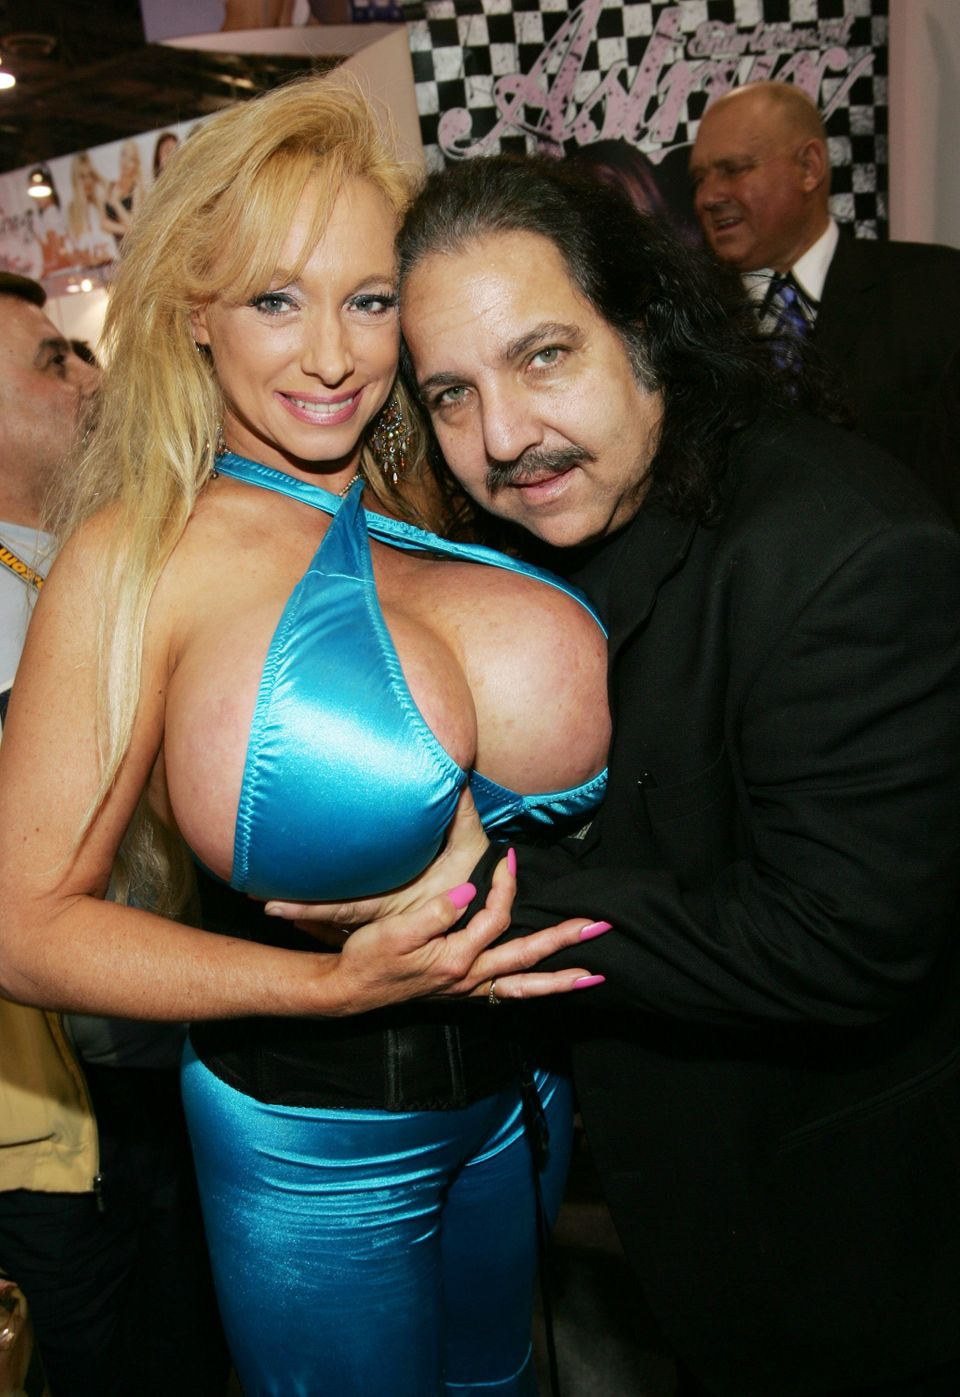 LAS VEGAS - JANUARY 7:  Adult film stars Echo Valley and Ron Jeremy participate in the 2005 AVN Adult Entertainment Expo at t